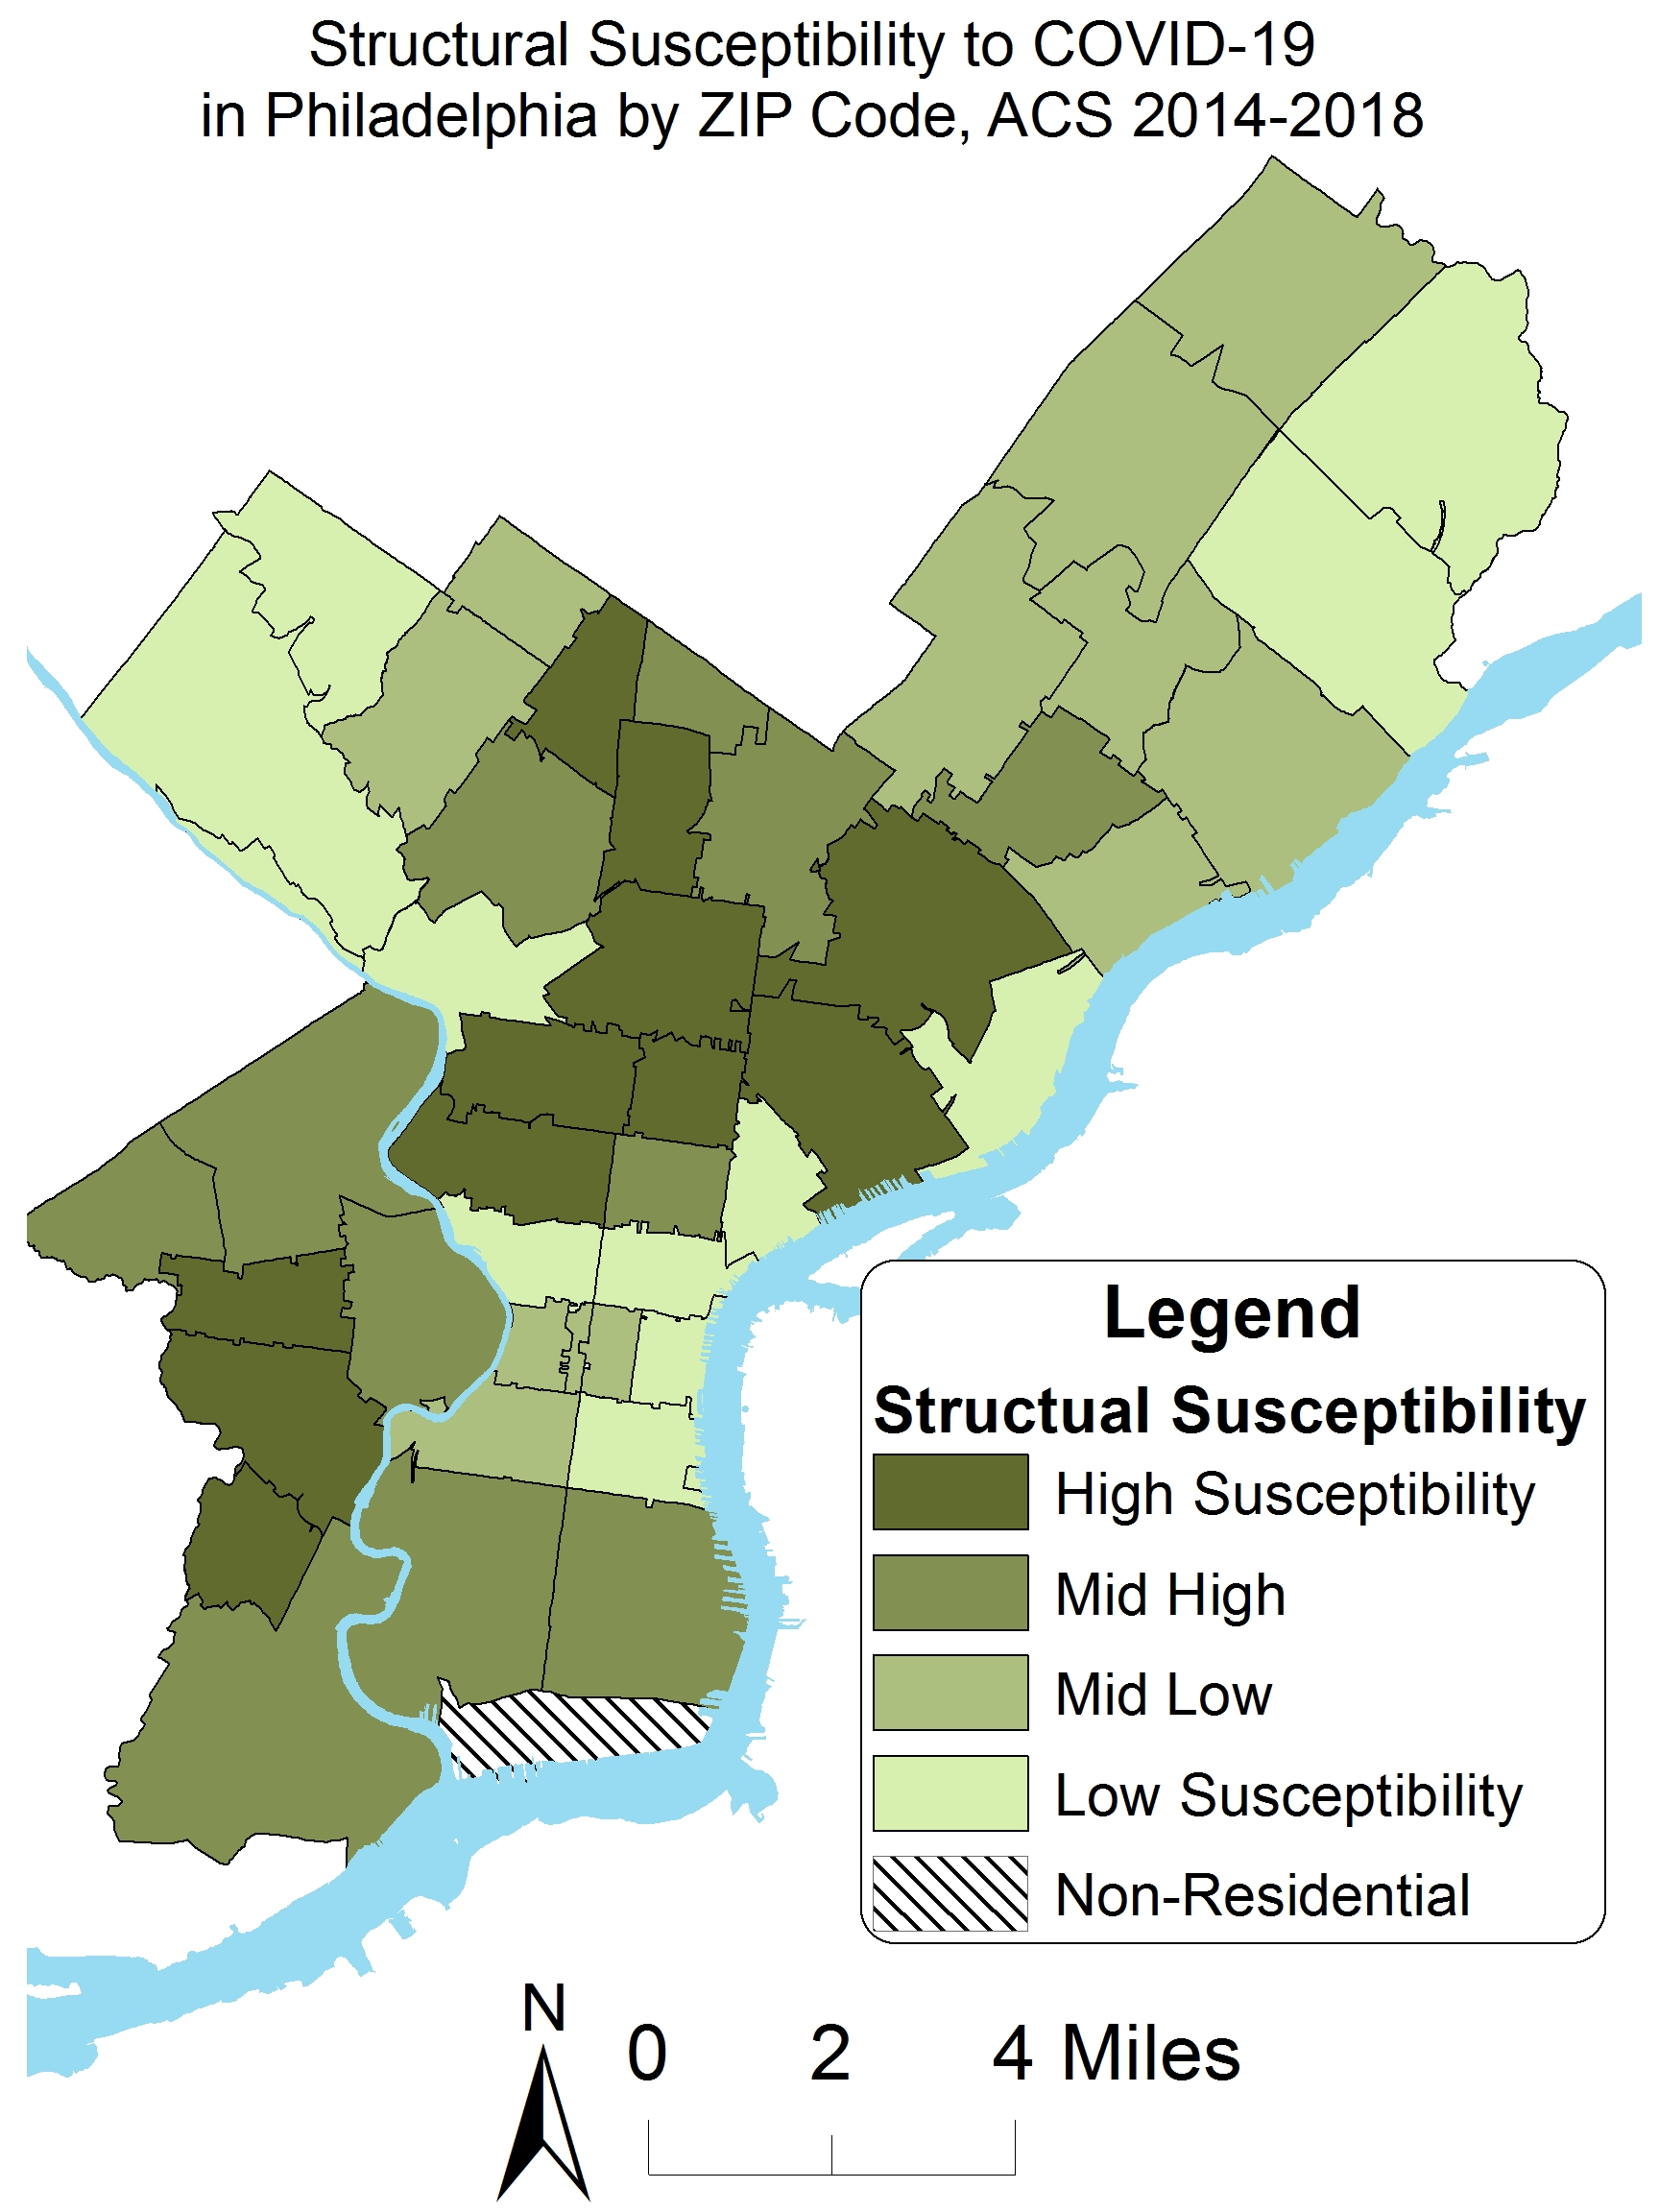 Structural susceptibility to COVID19 in Philadelphia by zip code, ACS 2014-2018